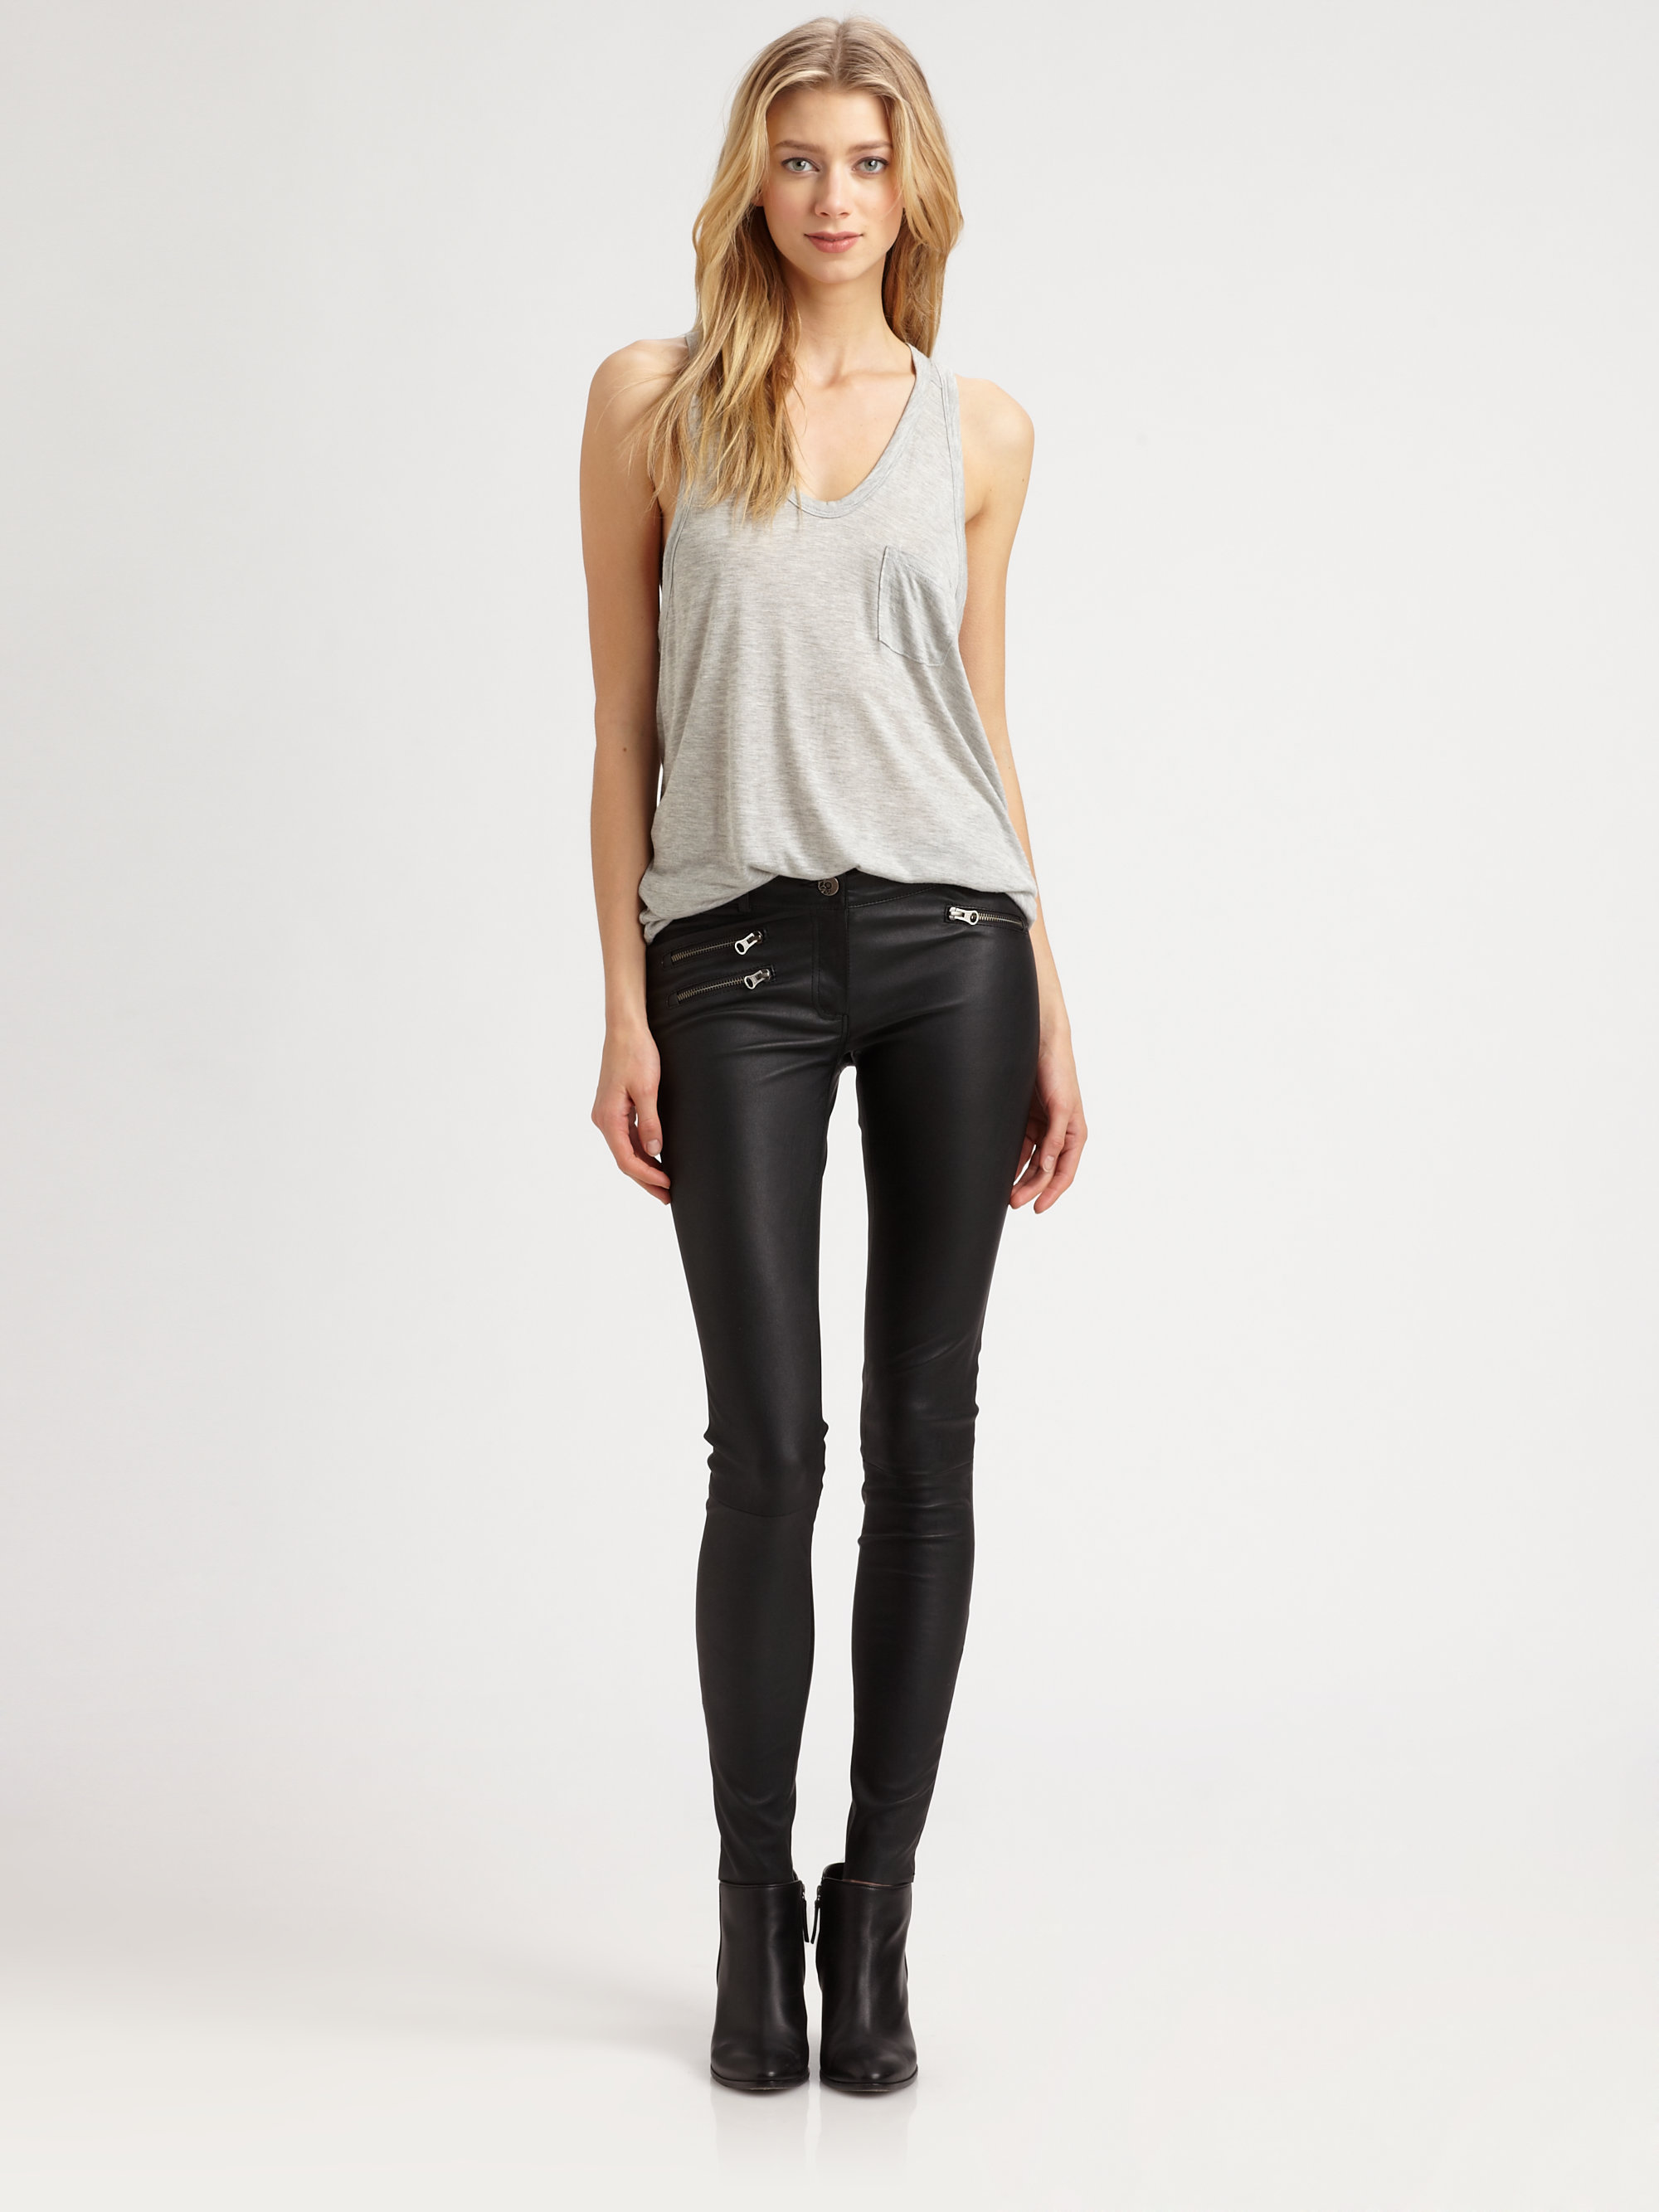 Lyst - Mackage Miki Stretch Leather Pants in Black